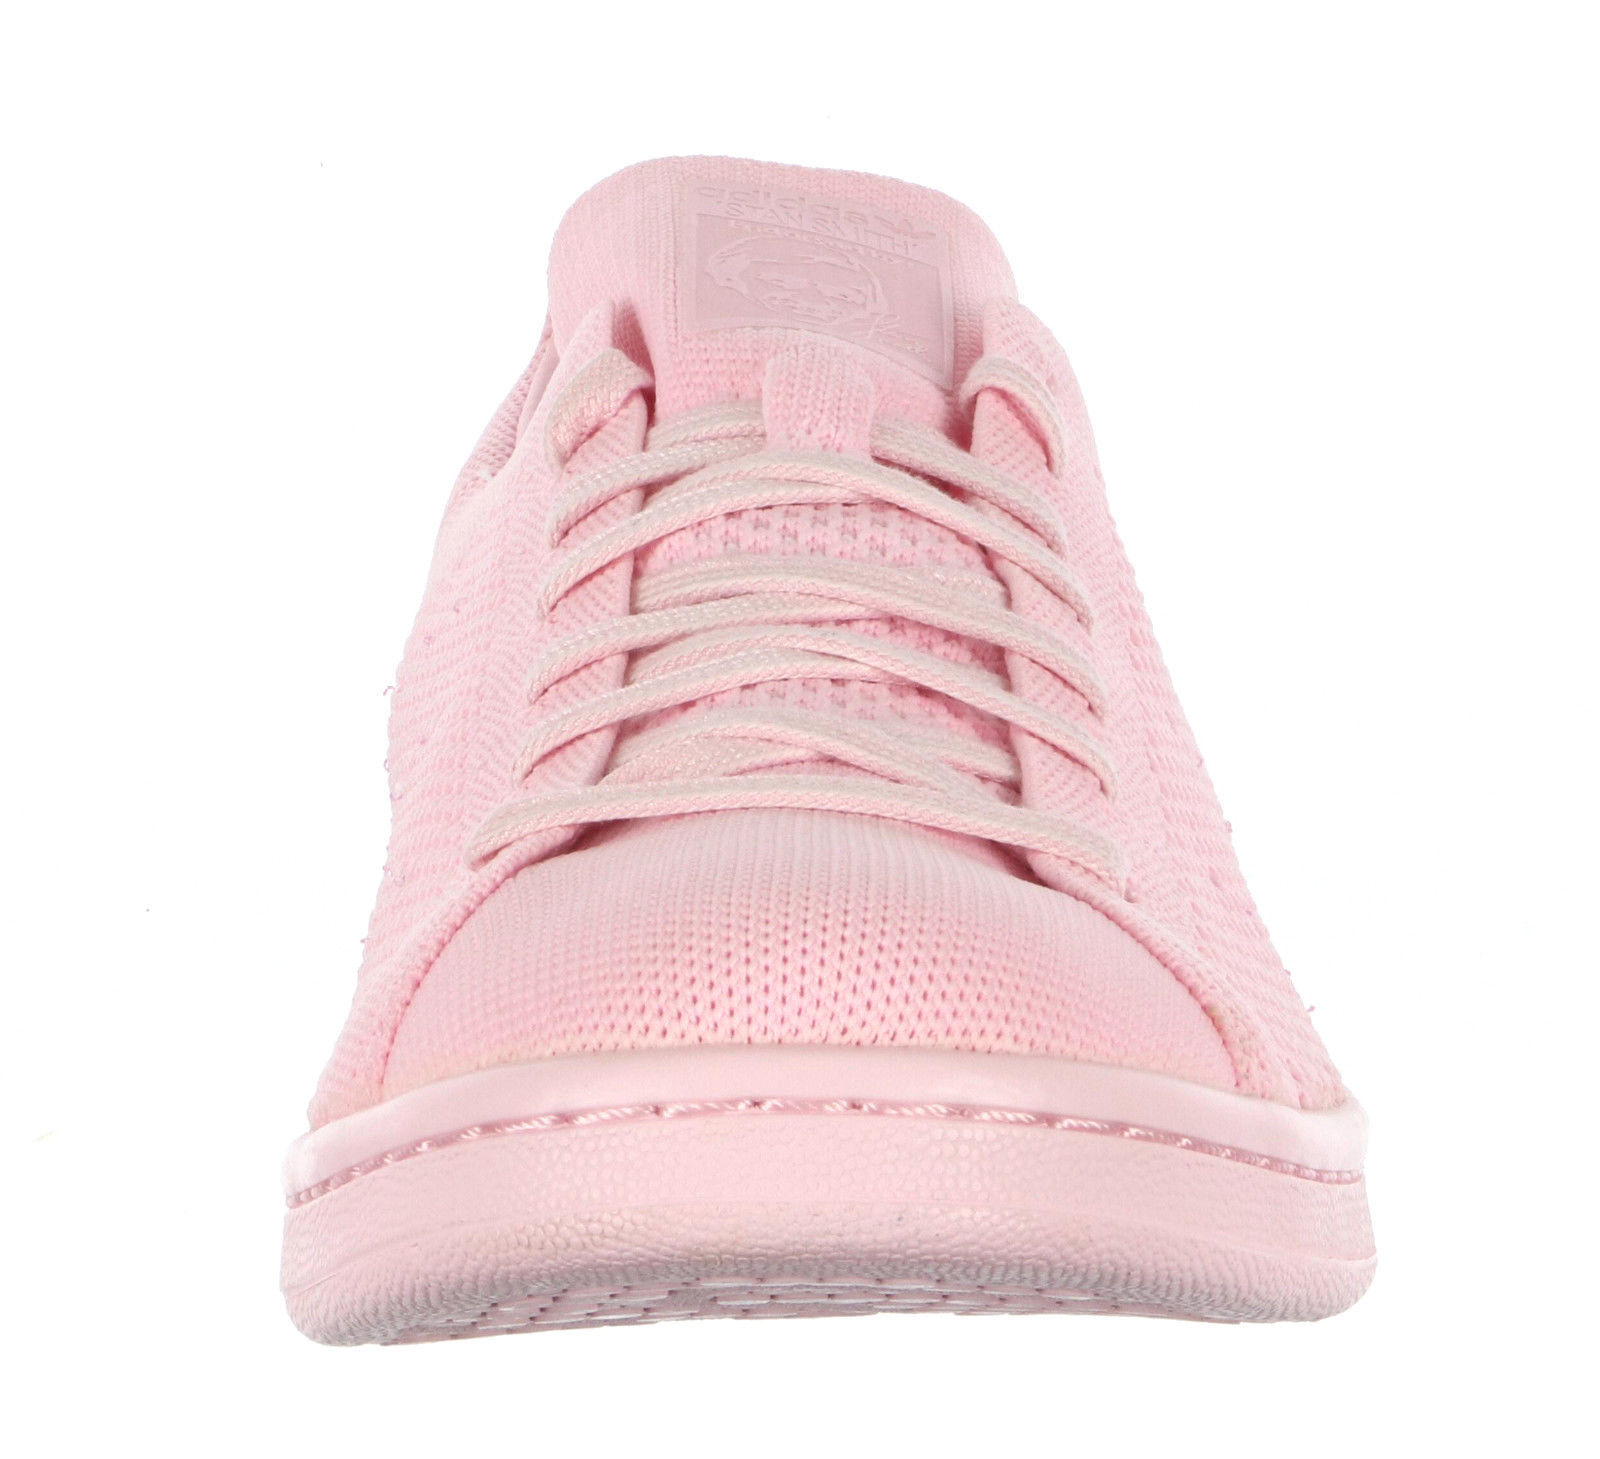 check out 8cd18 88c92 ADIDAS Originals Stan Smith Primeknit Casual Shoes sz 13 Semi Pink Glow PK